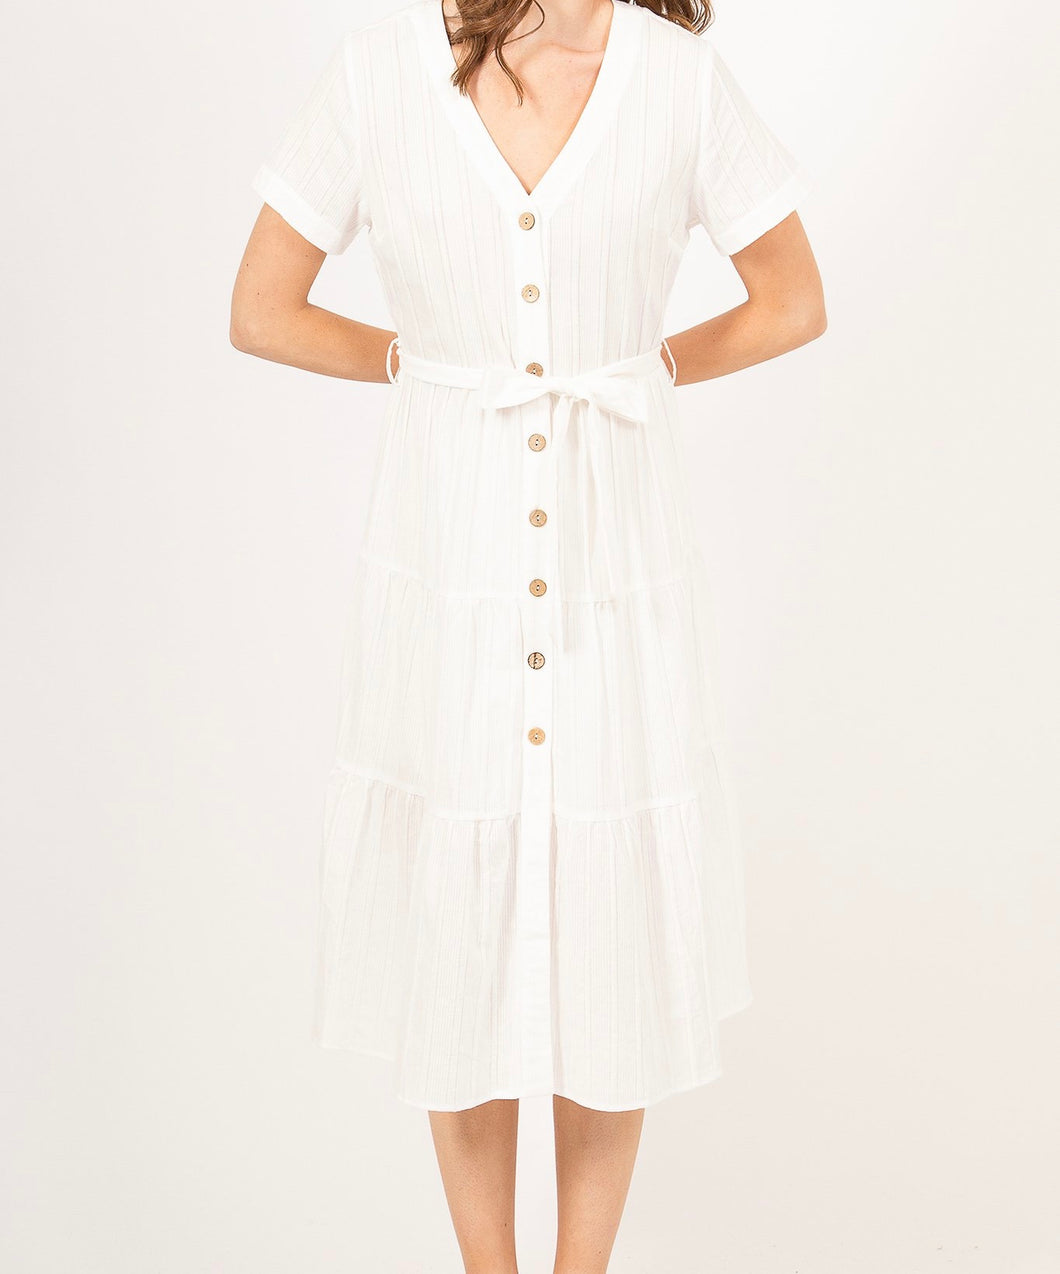 Southern Girl Midi Dress White